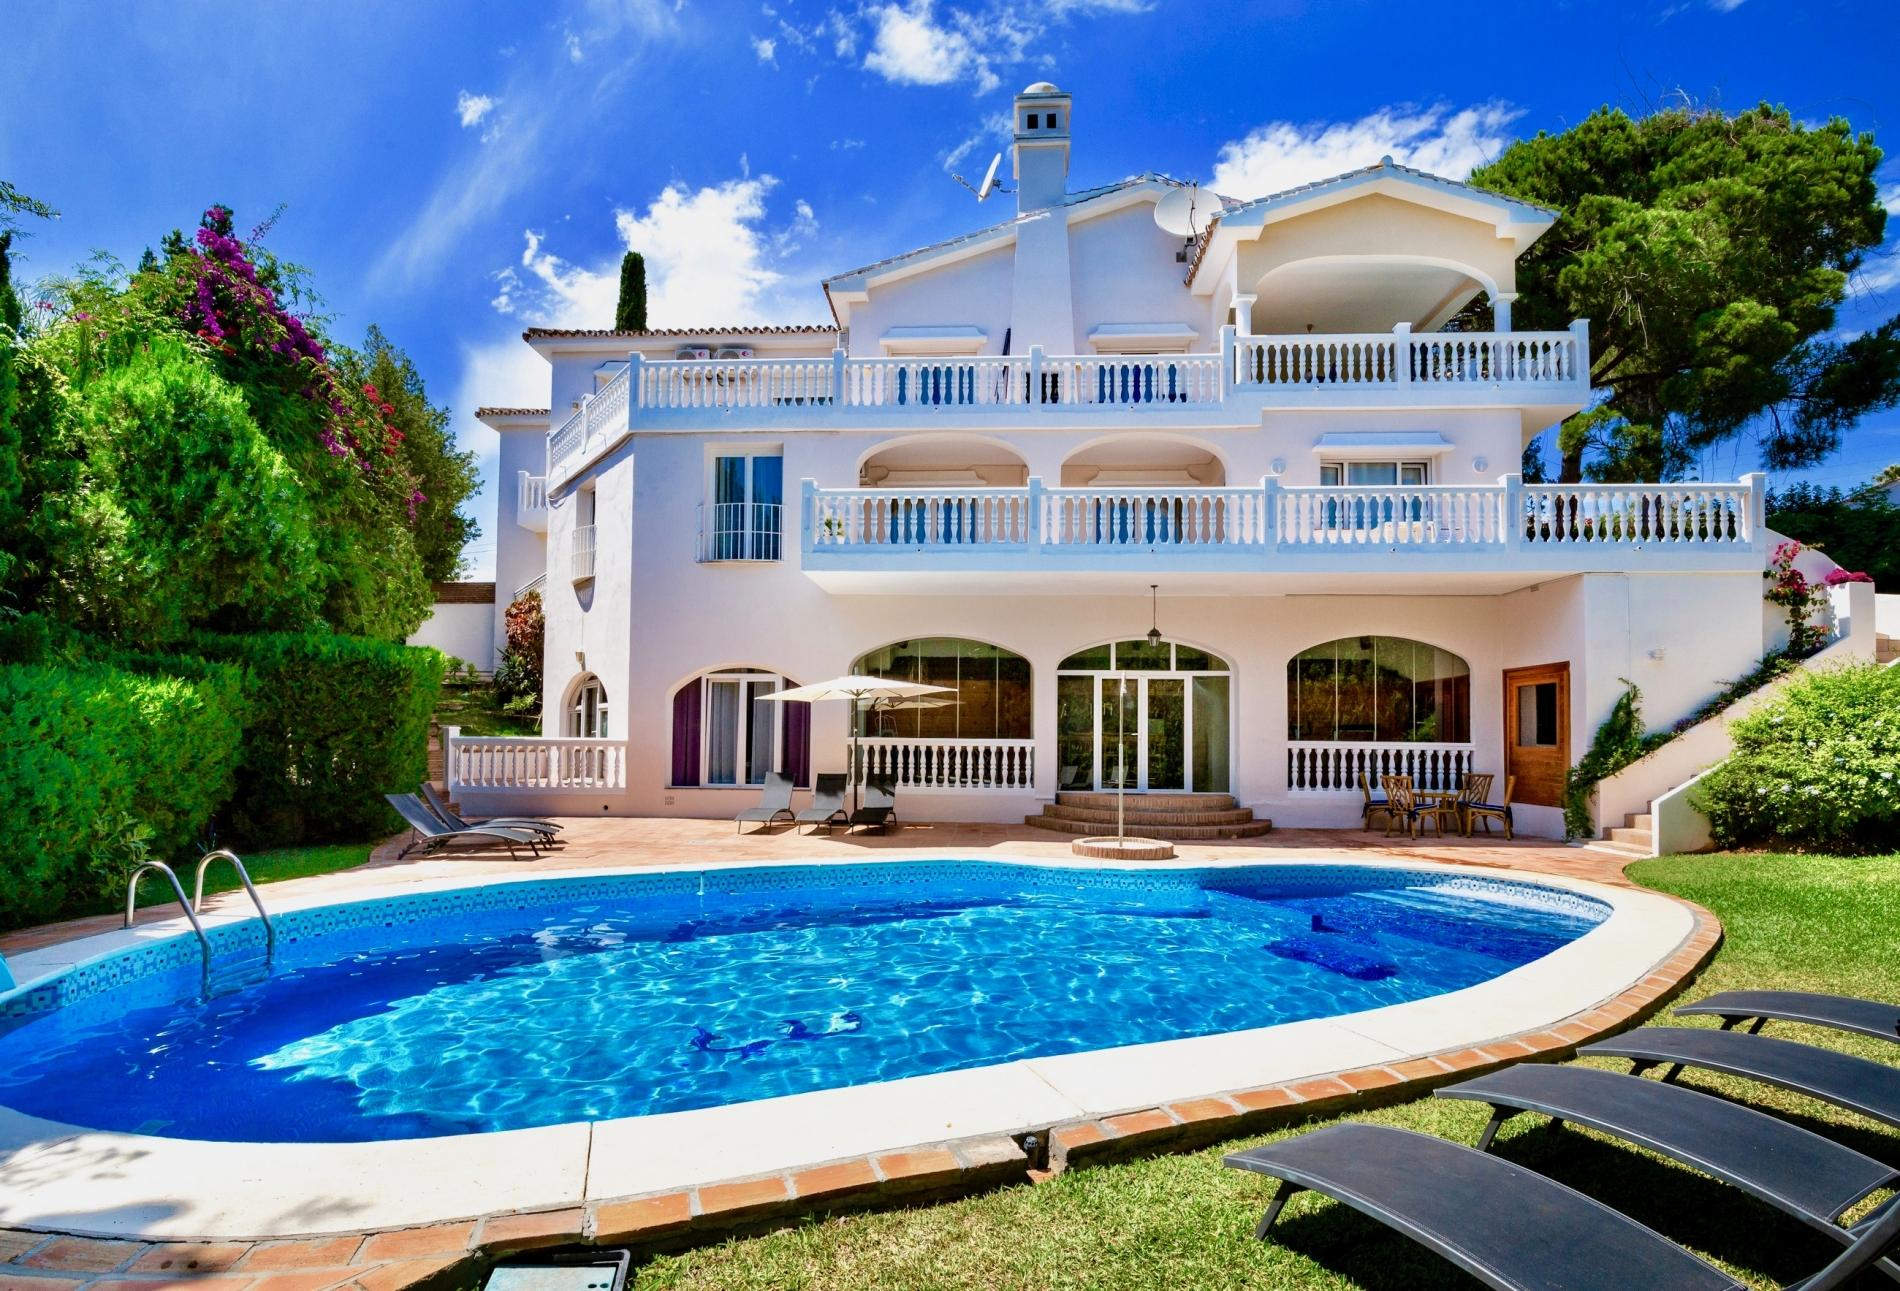 Marbella, ES Melissa - Exceptional 8BR Villa in Marbella, 2 km the Beach, Heated Pool, Wifi